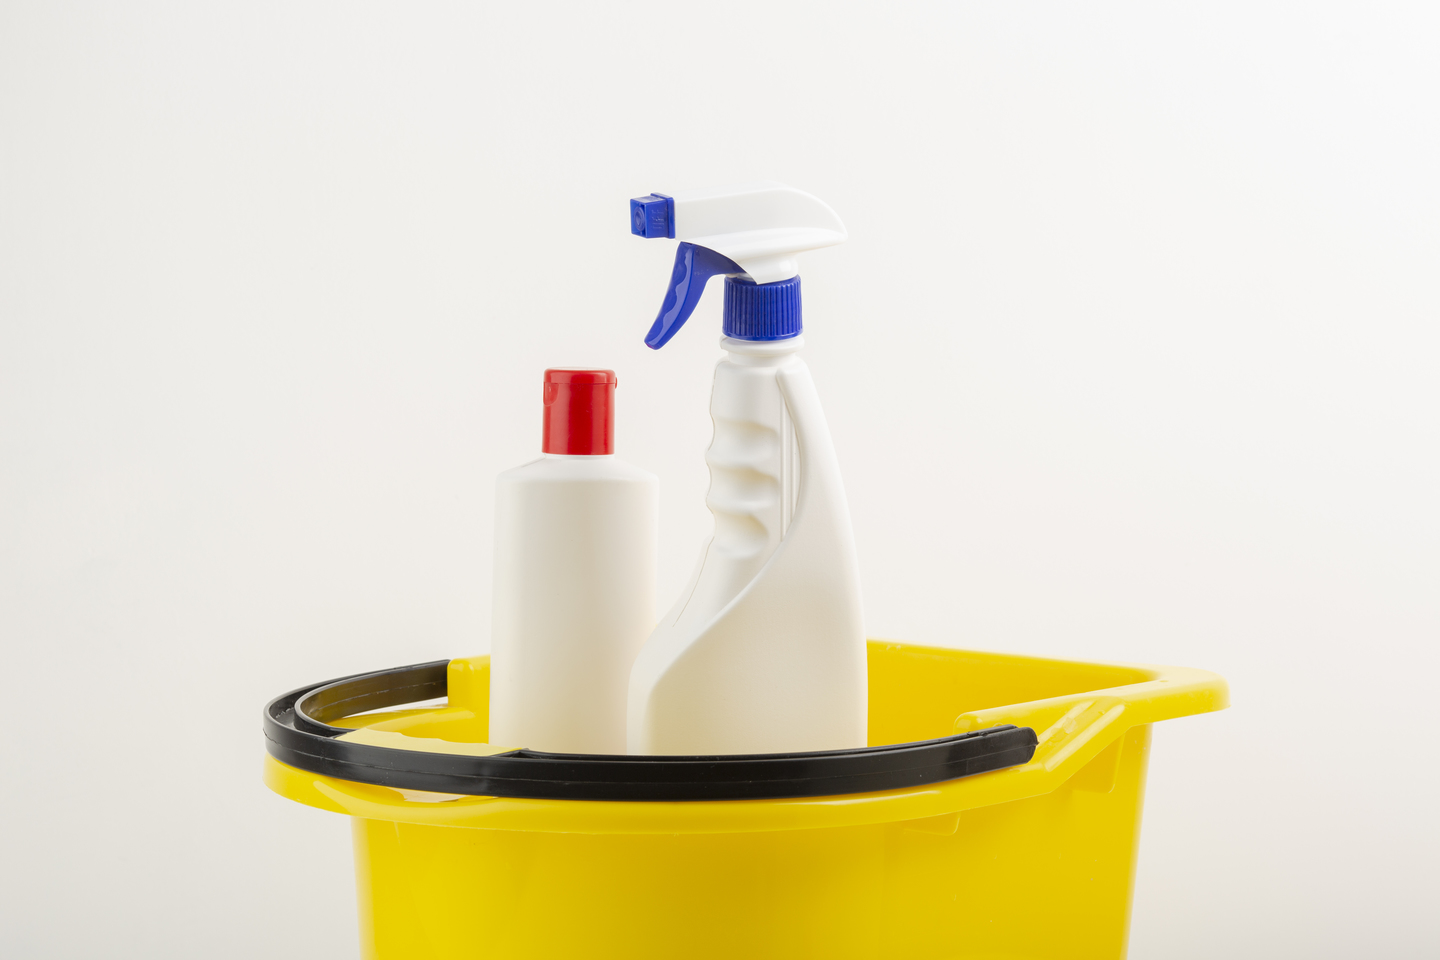 cleaning bottle sprays in yellow bucket